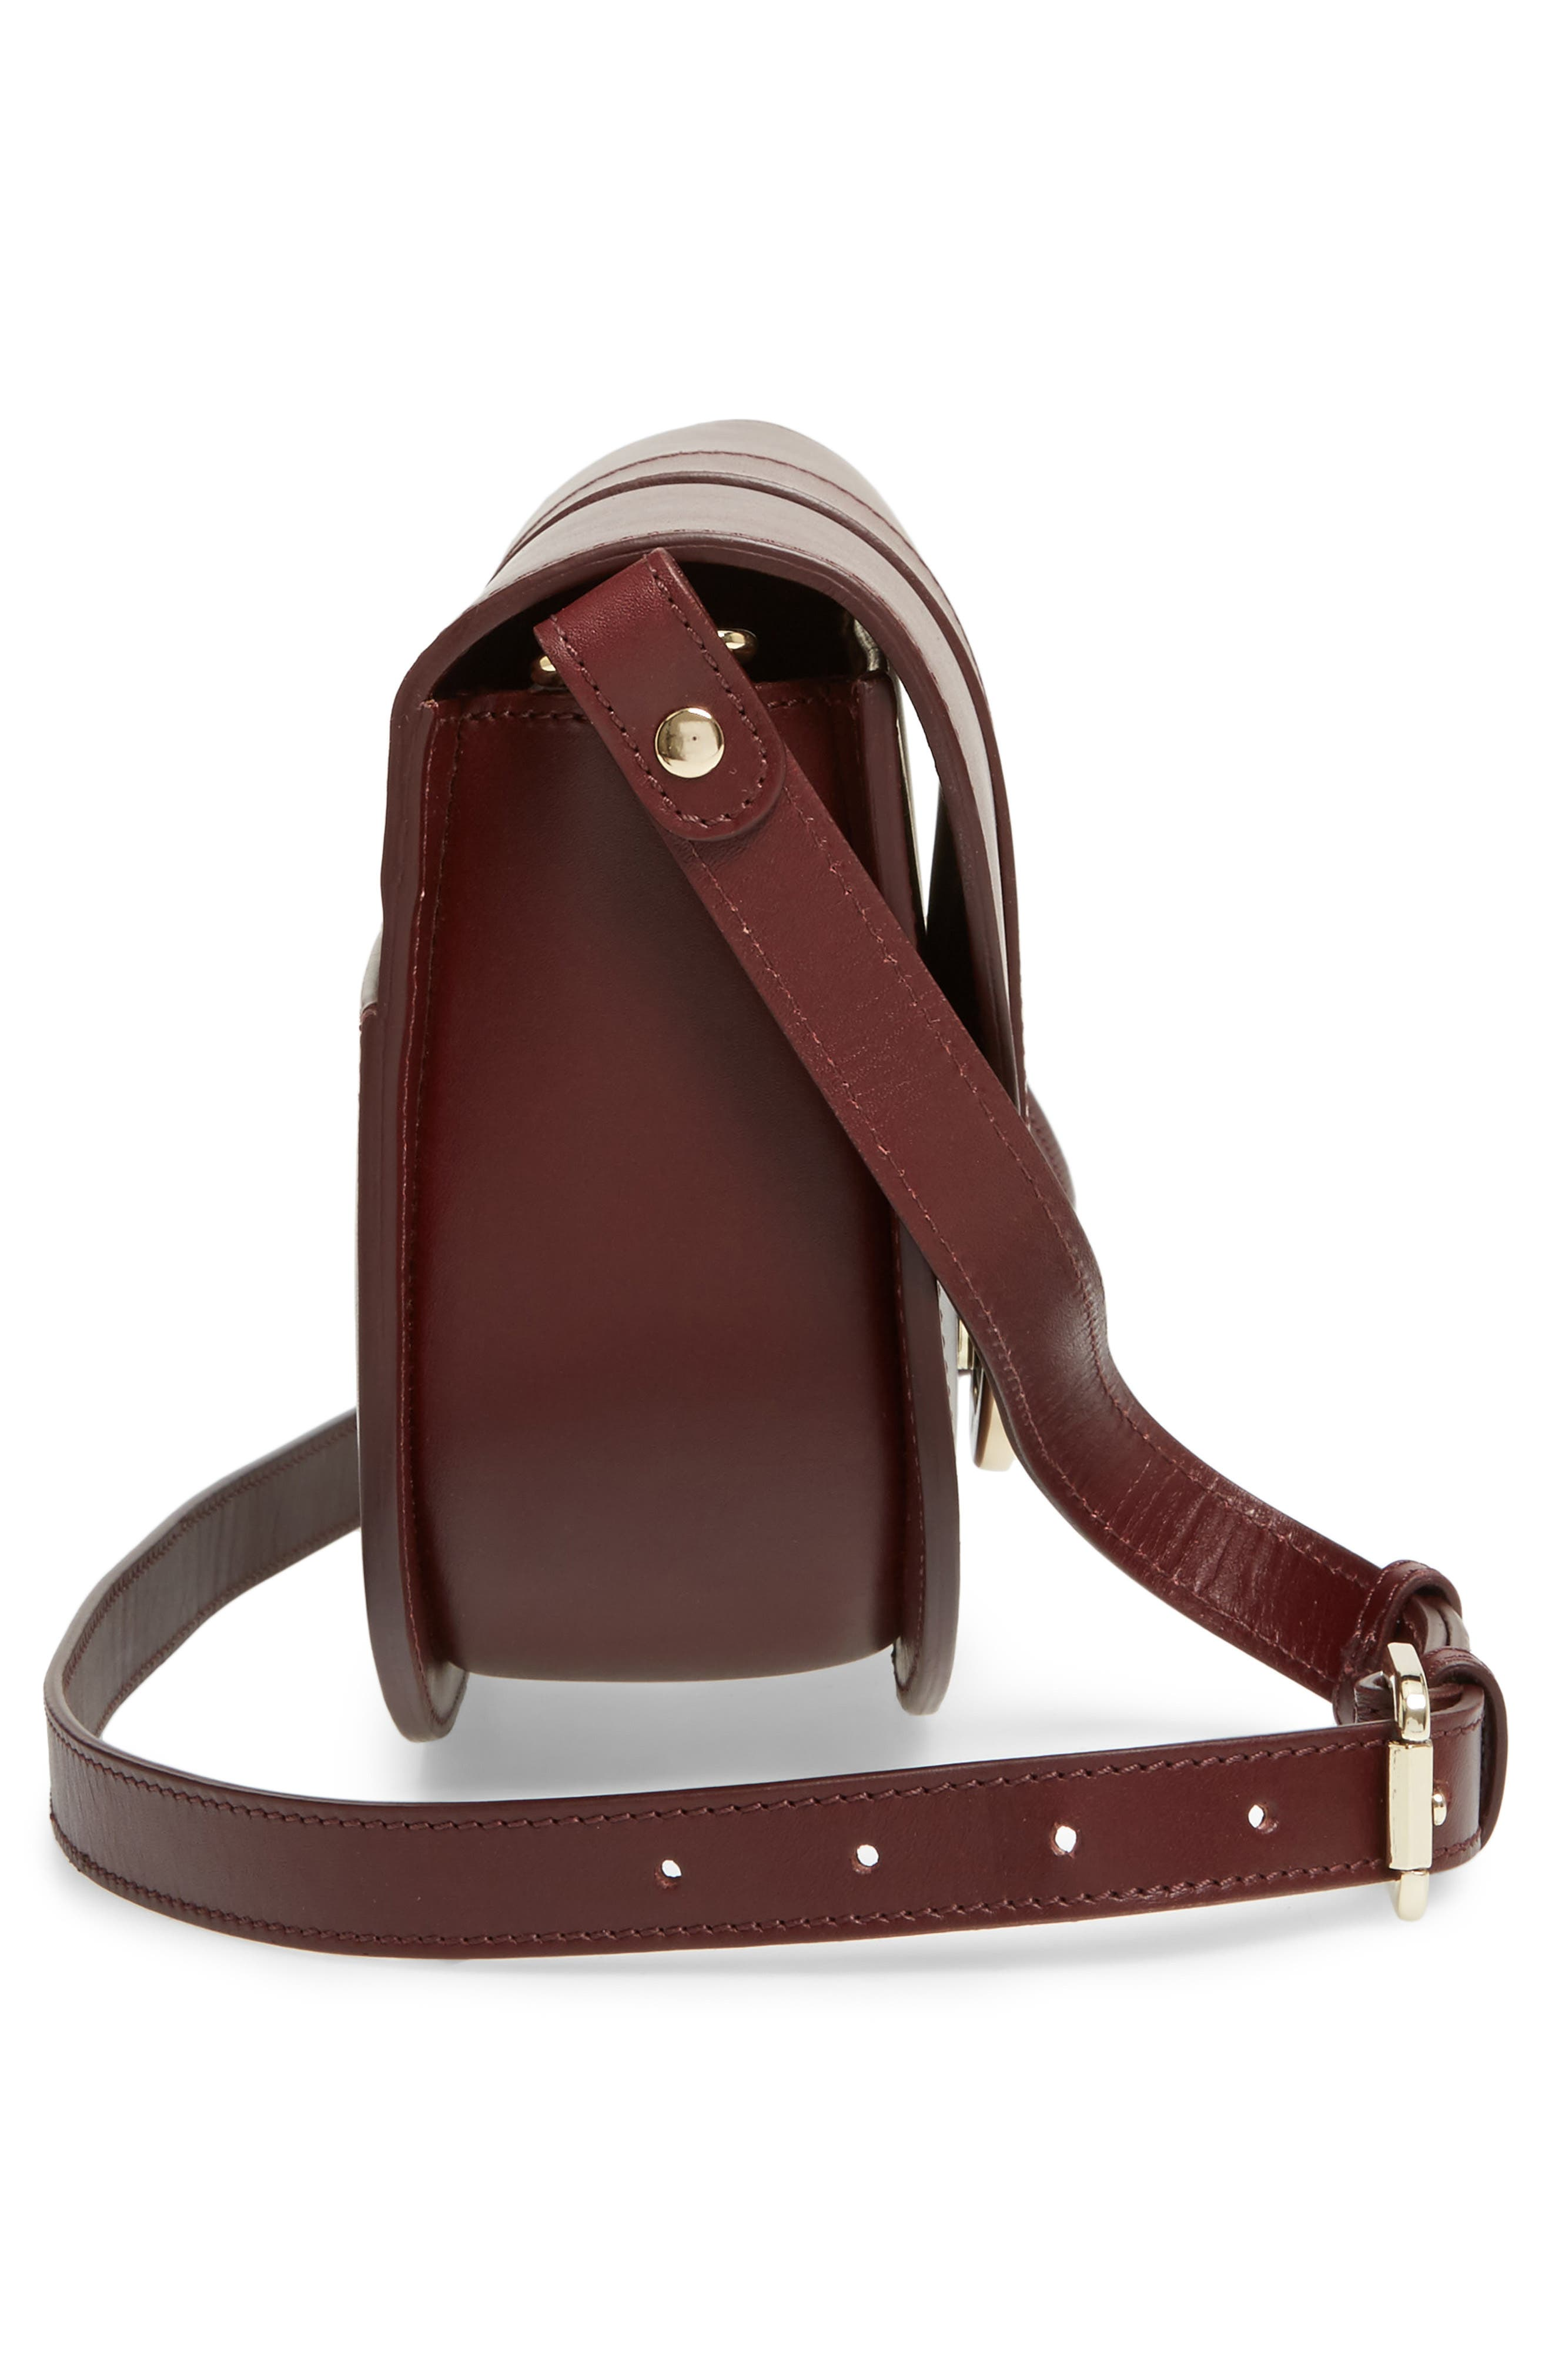 Soho Calfskin Leather Saddle Bag,                             Alternate thumbnail 5, color,                             600